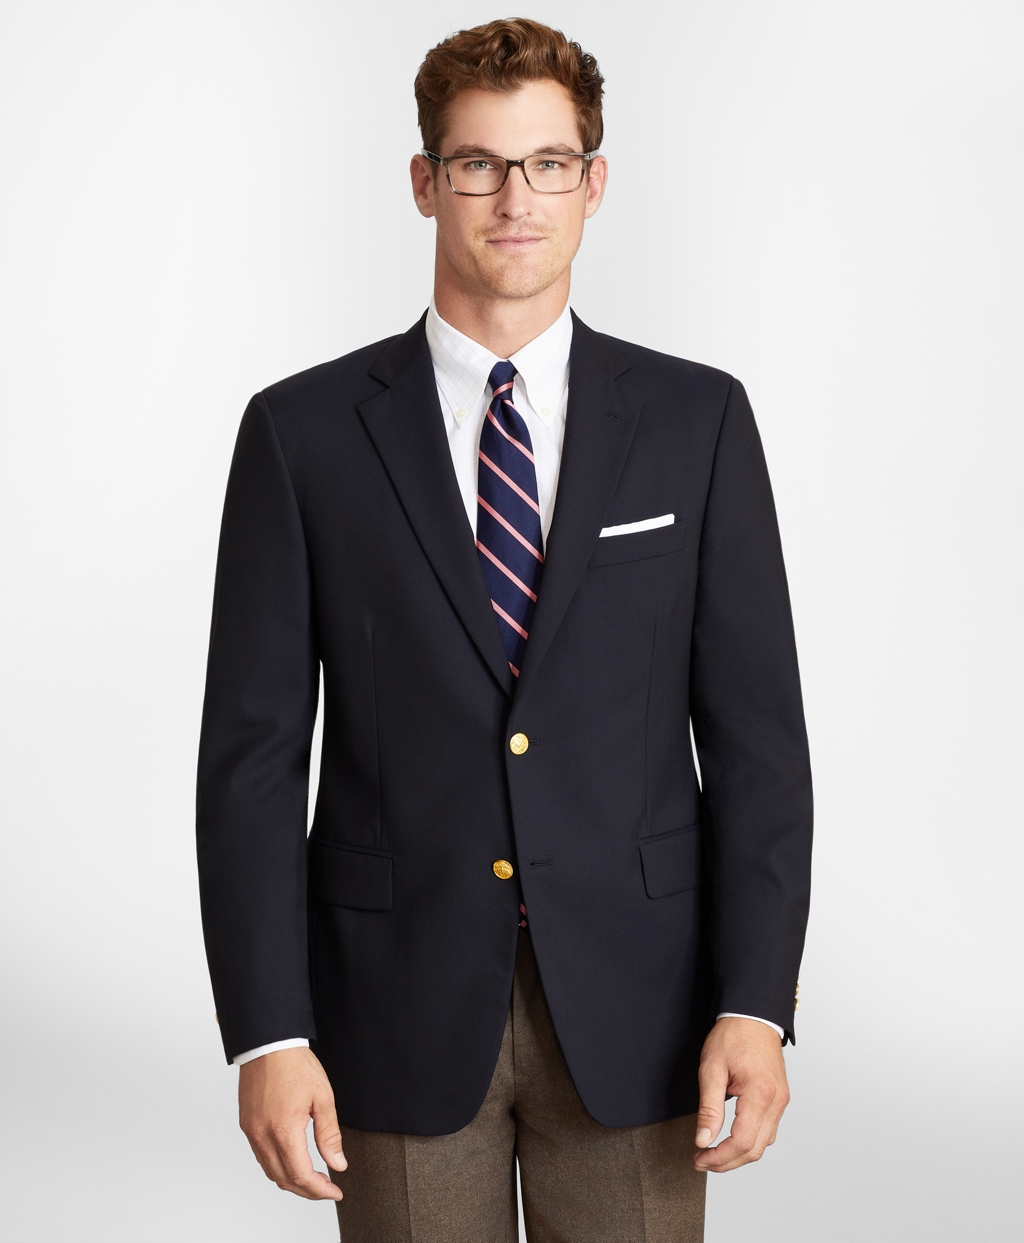 Free shipping on blazers and sport coats at loadingbassqz.cf Shop the latest styles from the best brands of blazers for men. Totally free shipping and returns.